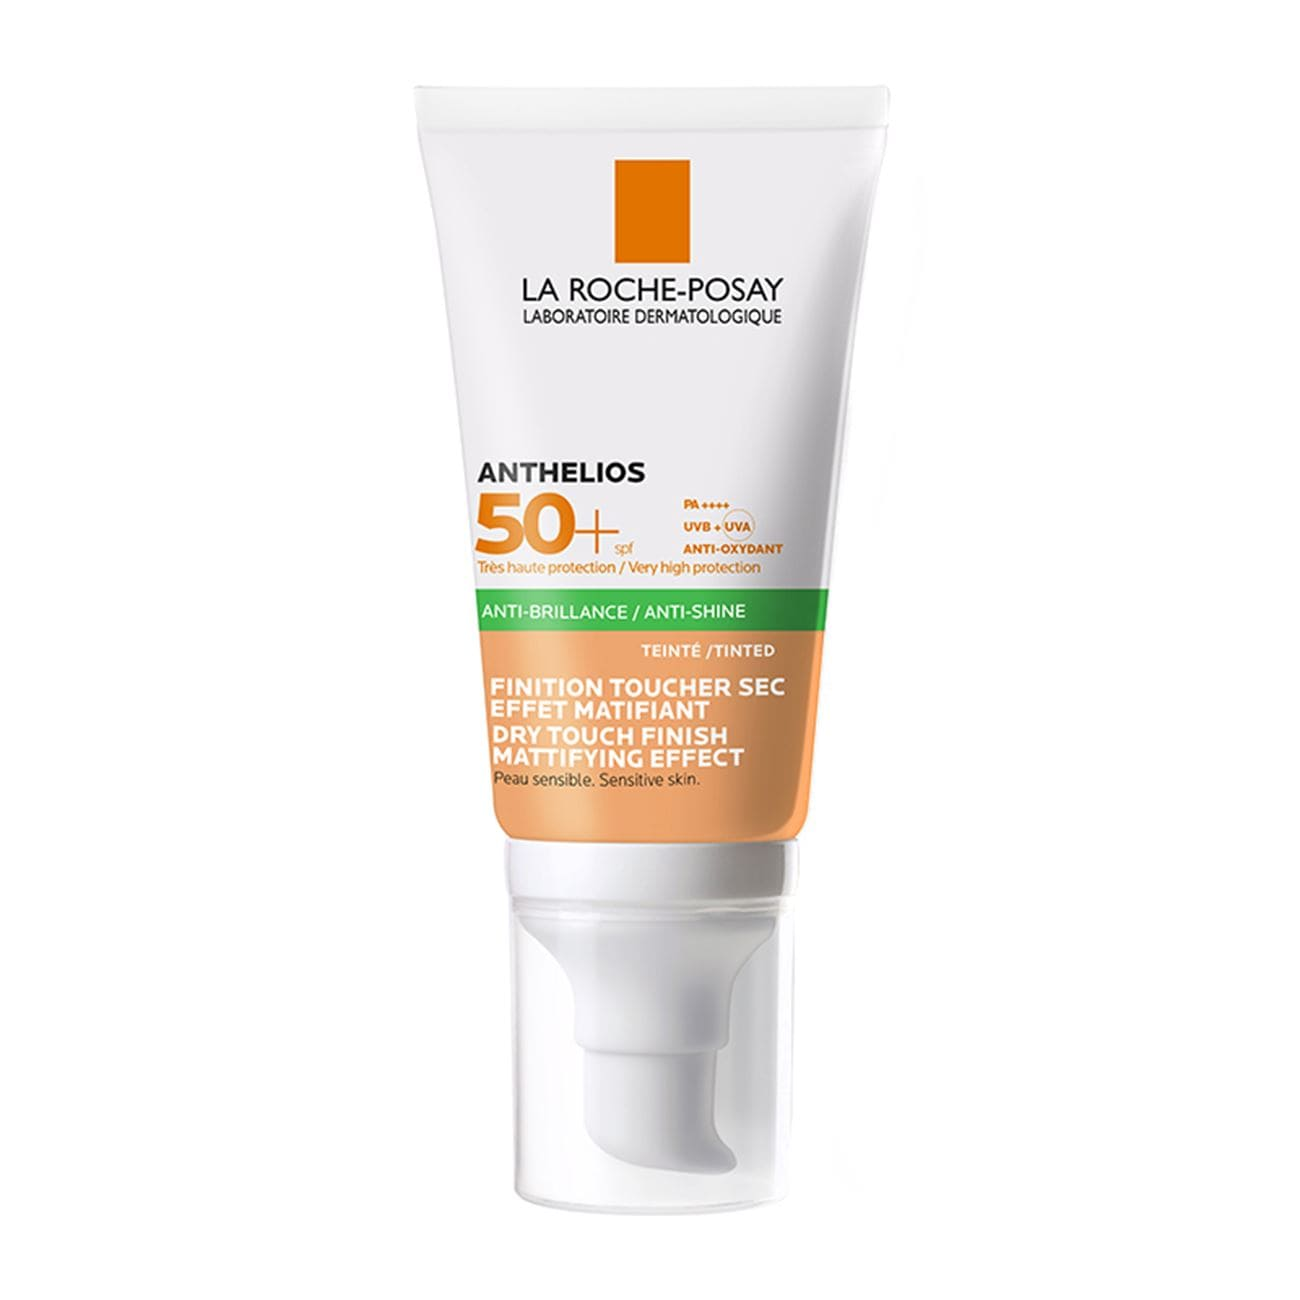 Anthelios Dry Touch Ap Tinted SPF 50+